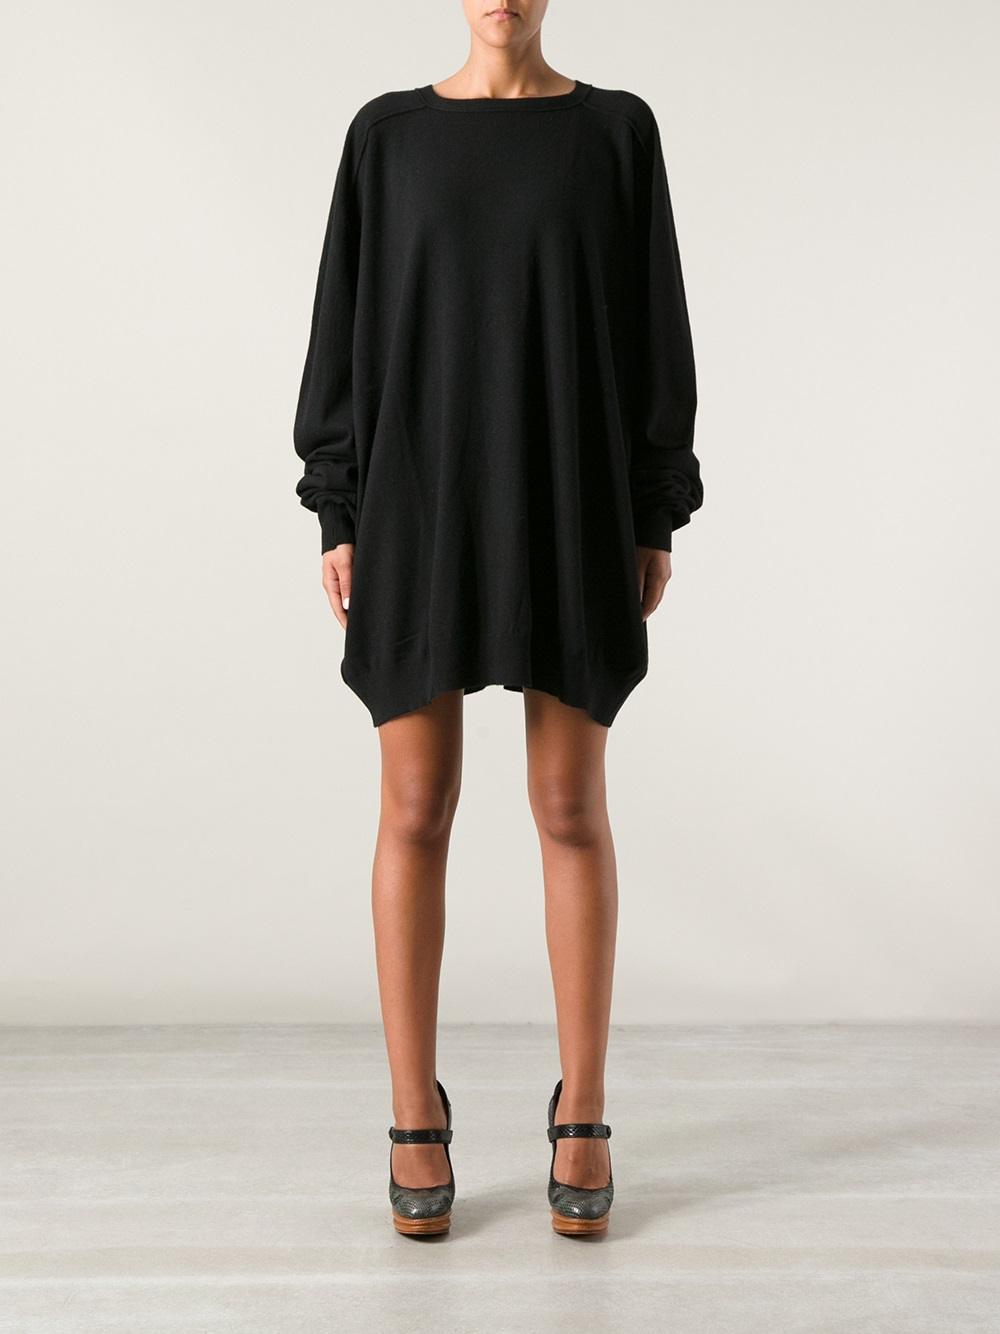 Societe Anonyme Oversized Jumper Dress Or Top In Black Lyst